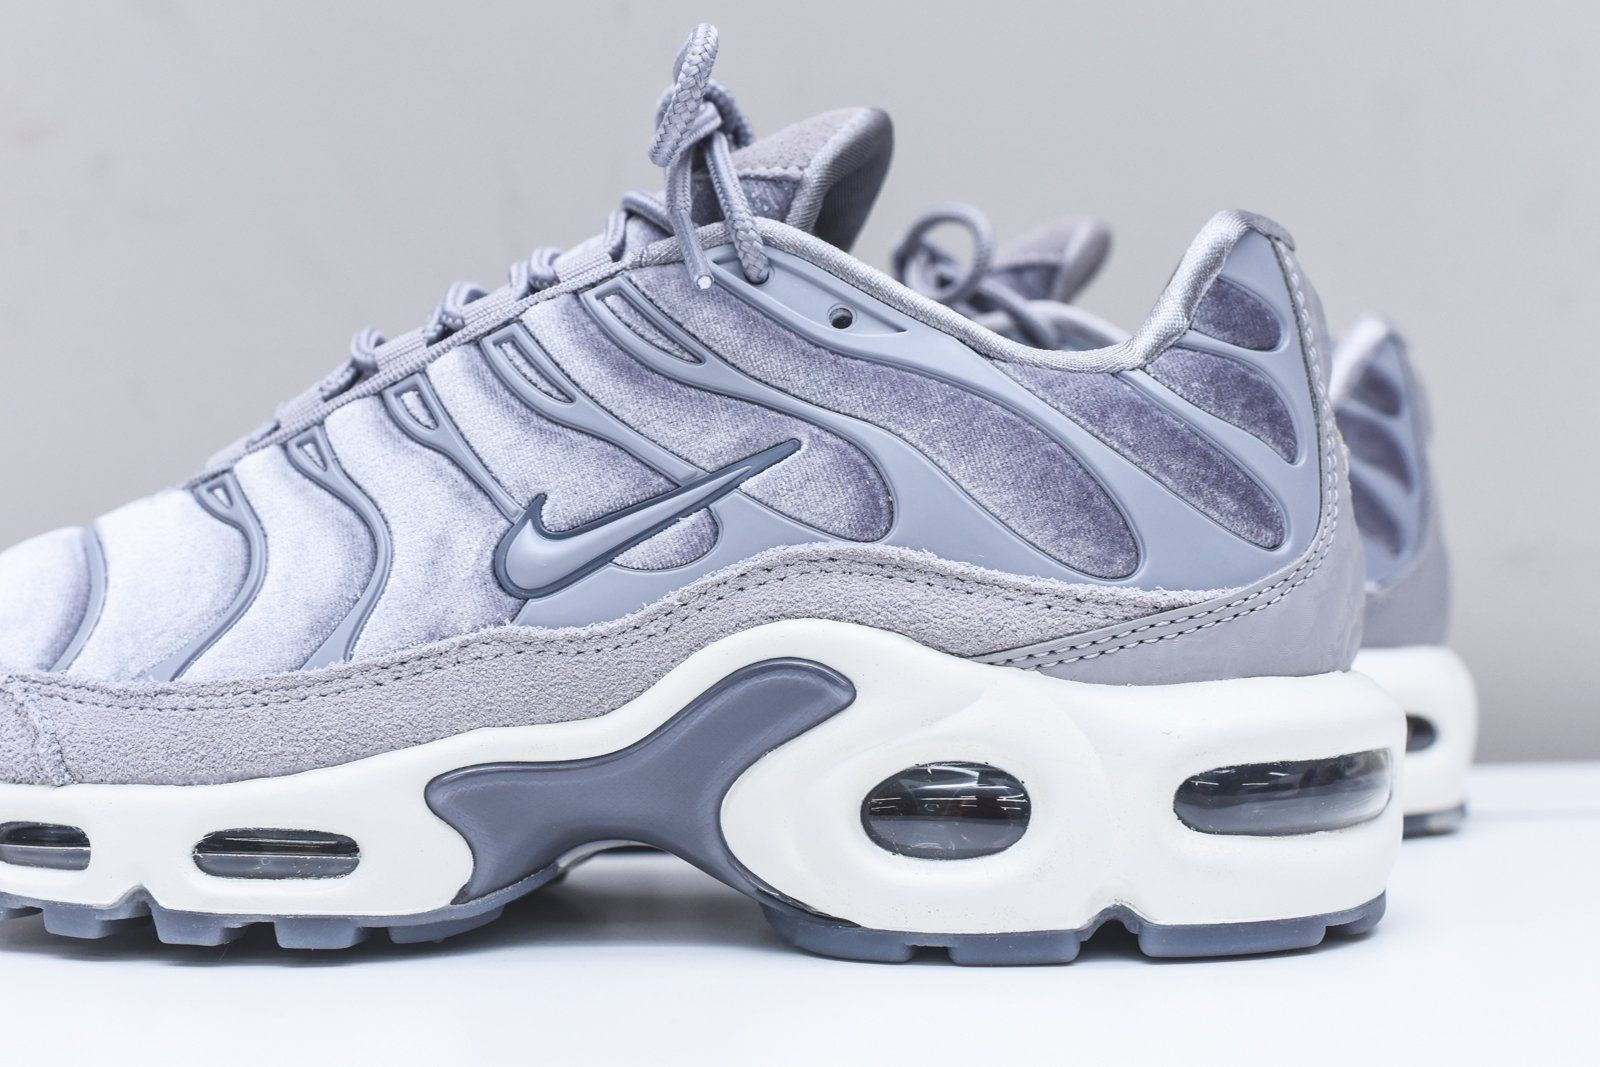 Nike WMNS Air Max Plus LX - Grey   White   Schuhe   Nike, Air max ... b4eb2506159